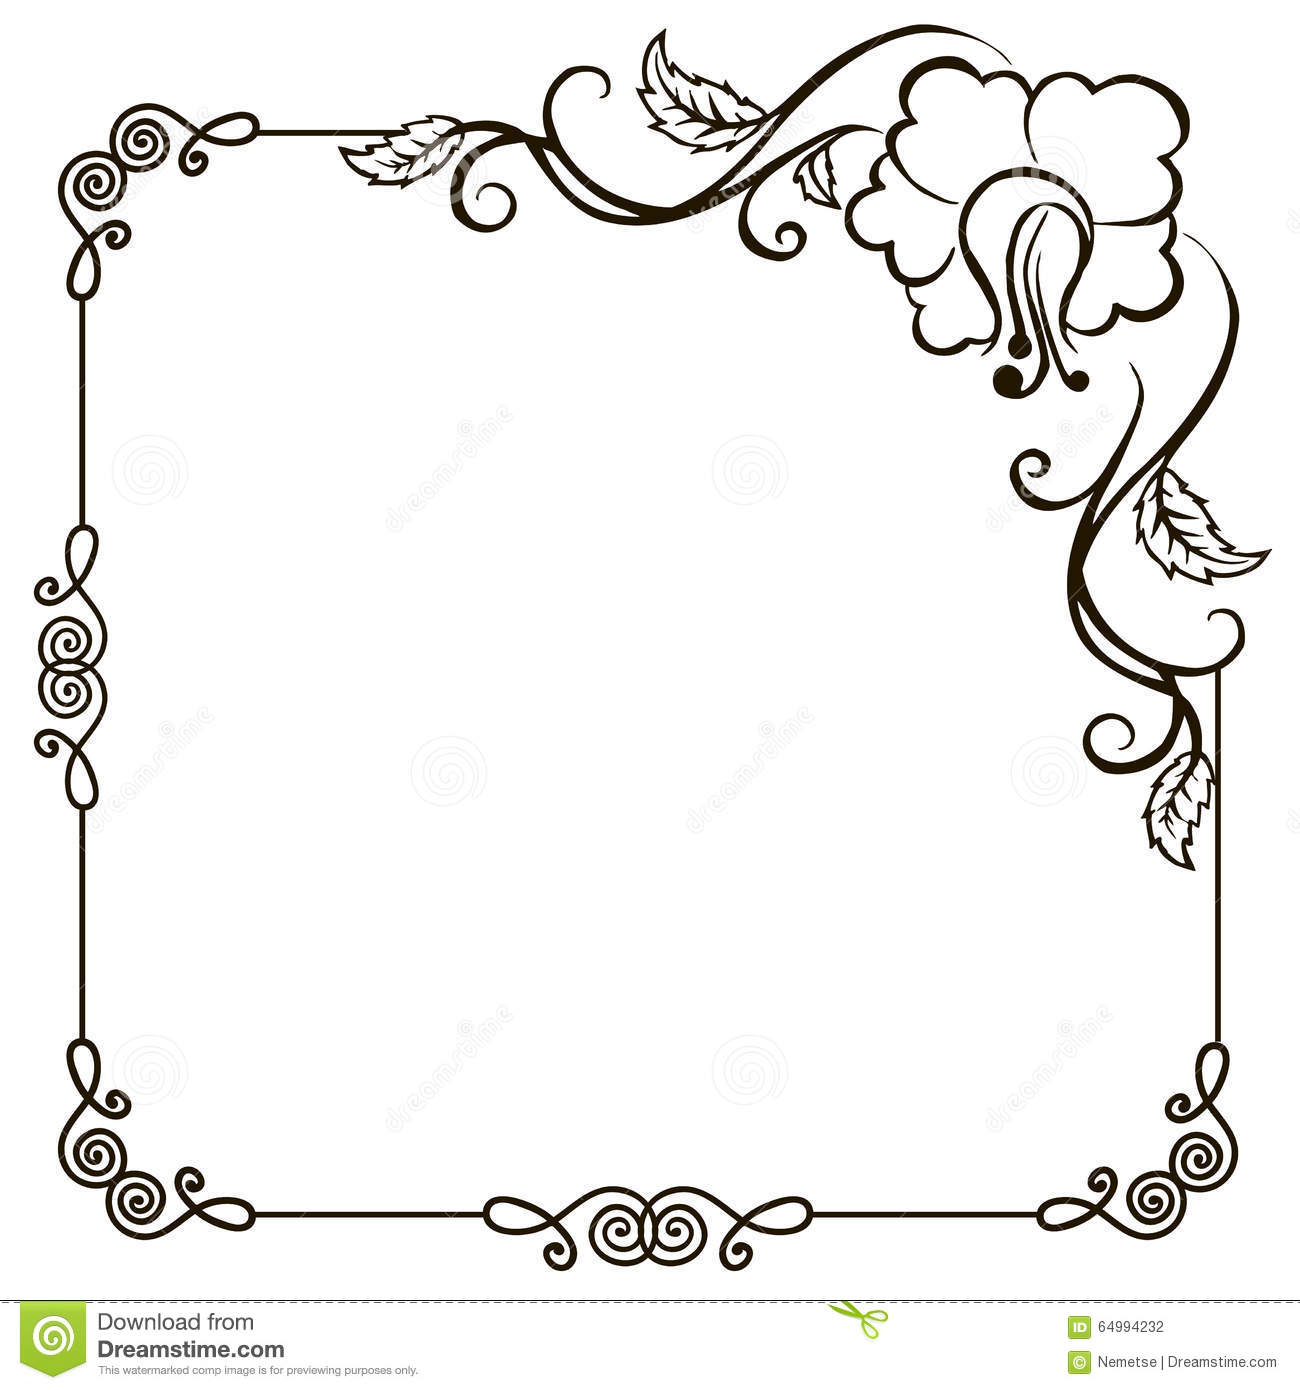 Download Vintage Floral Frame Stock Vector Illustration Of Abstract